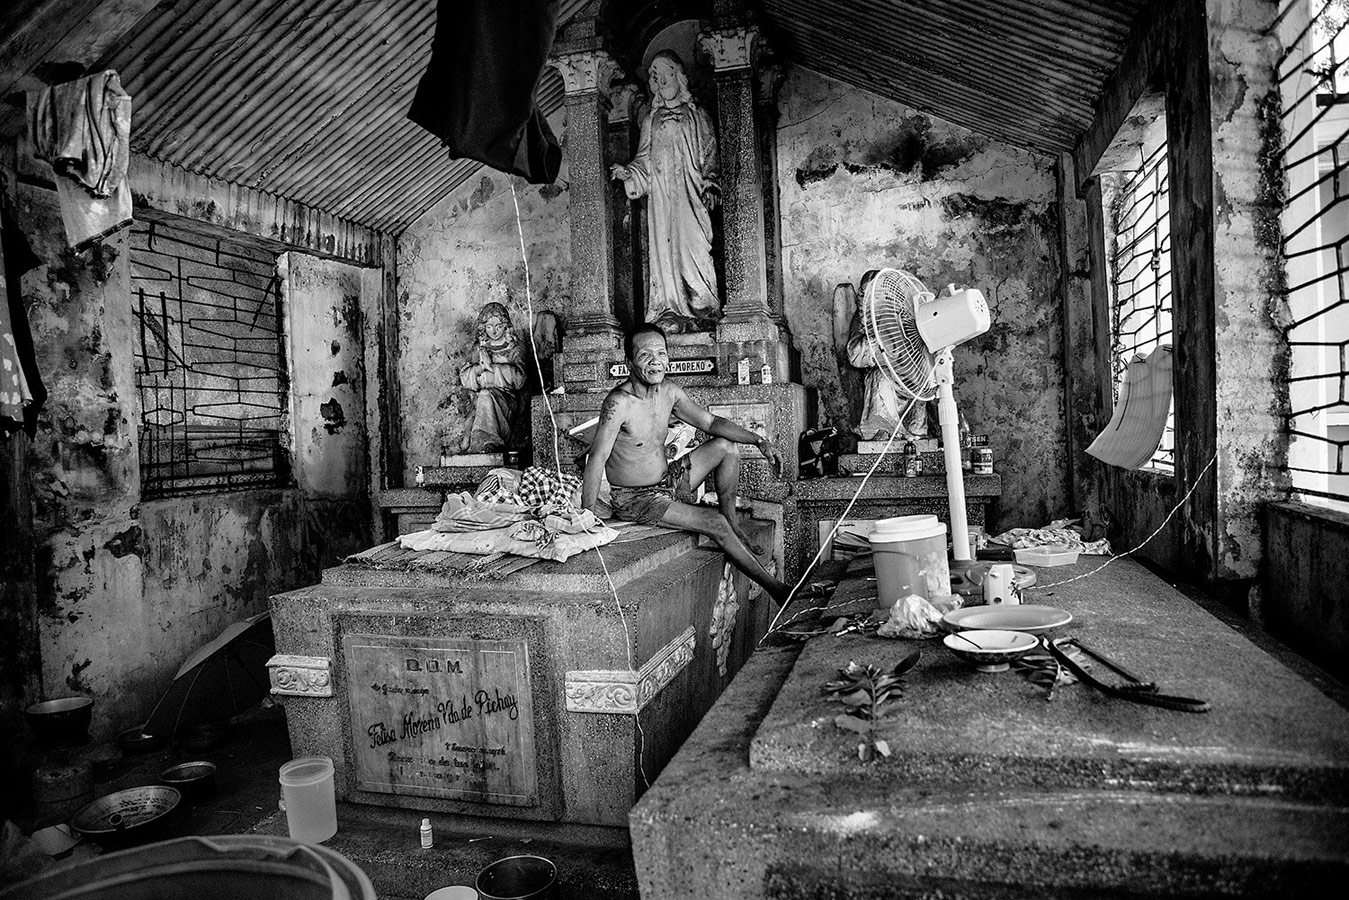 Ruben, 62, sit on top of his bed in one pantheon inside the northern cemetery of Manila, where he lives 30 years ago. © Bruno Gallardo, Spain, Kuala Lumpur International Photoawards - KLPA